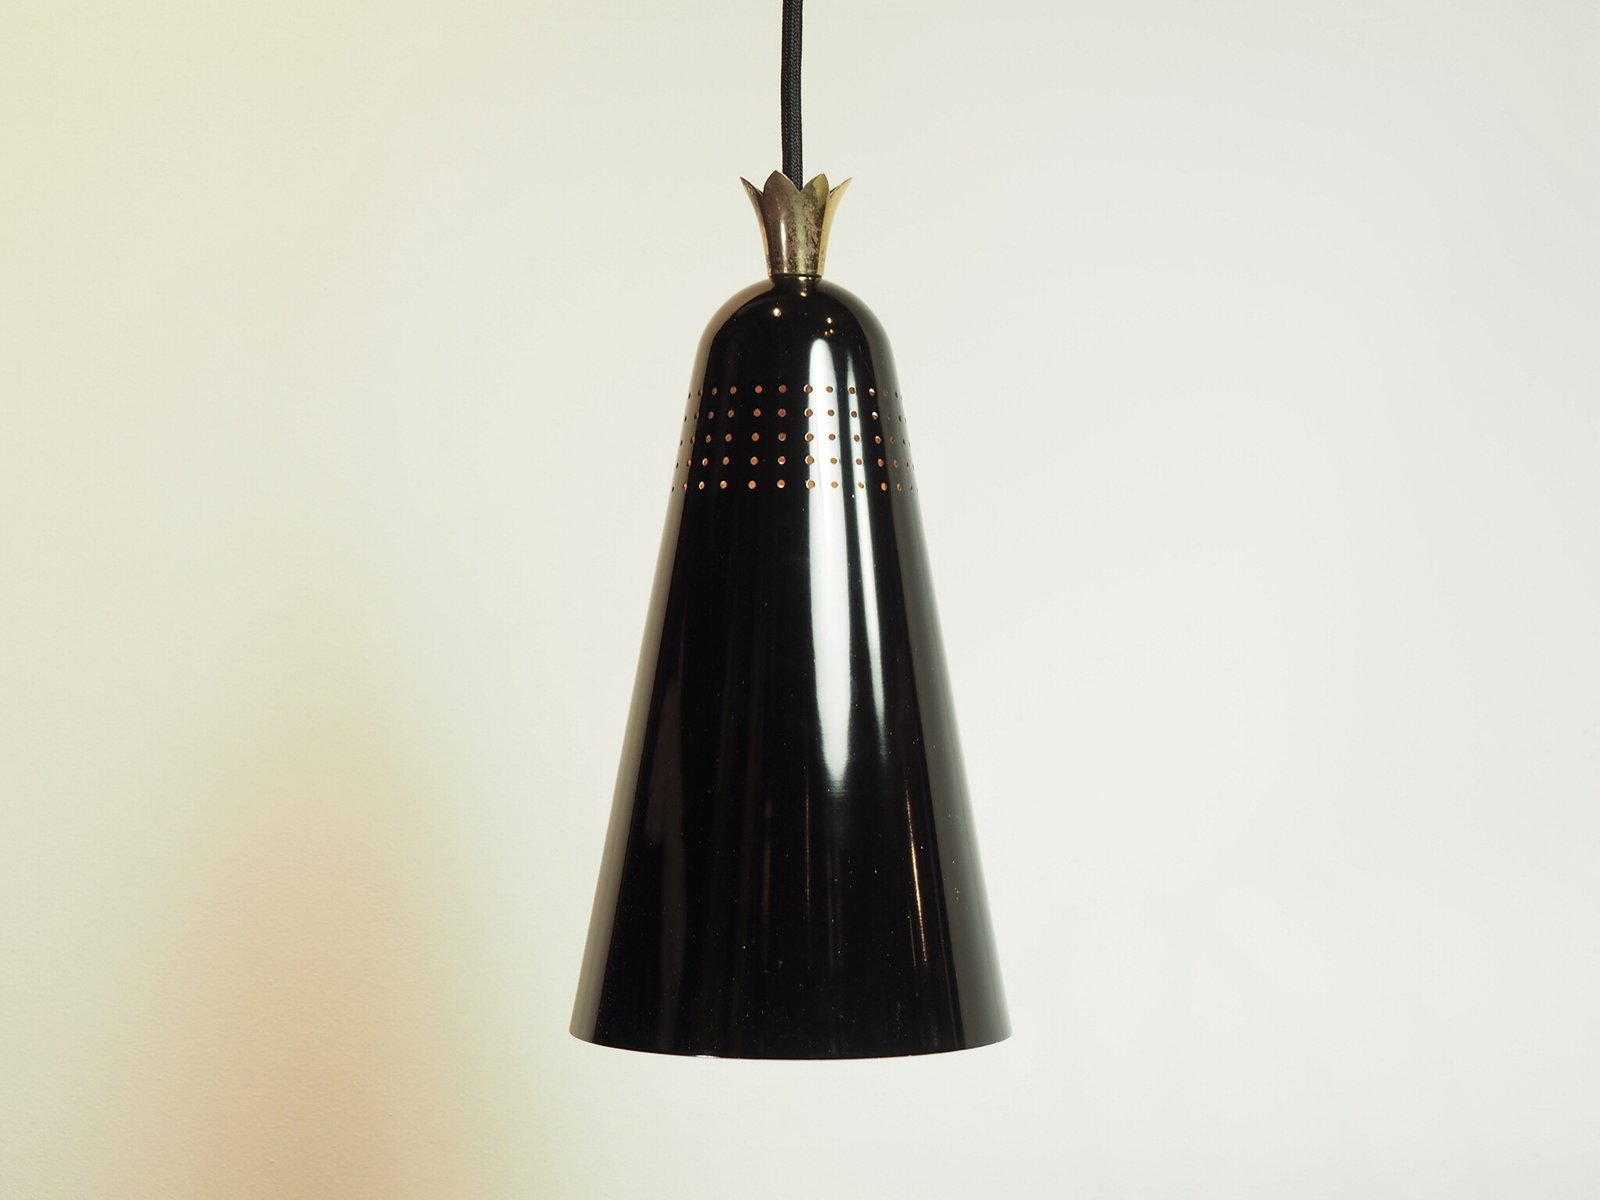 Ceiling Lamp by Otto Bartning, 1950s